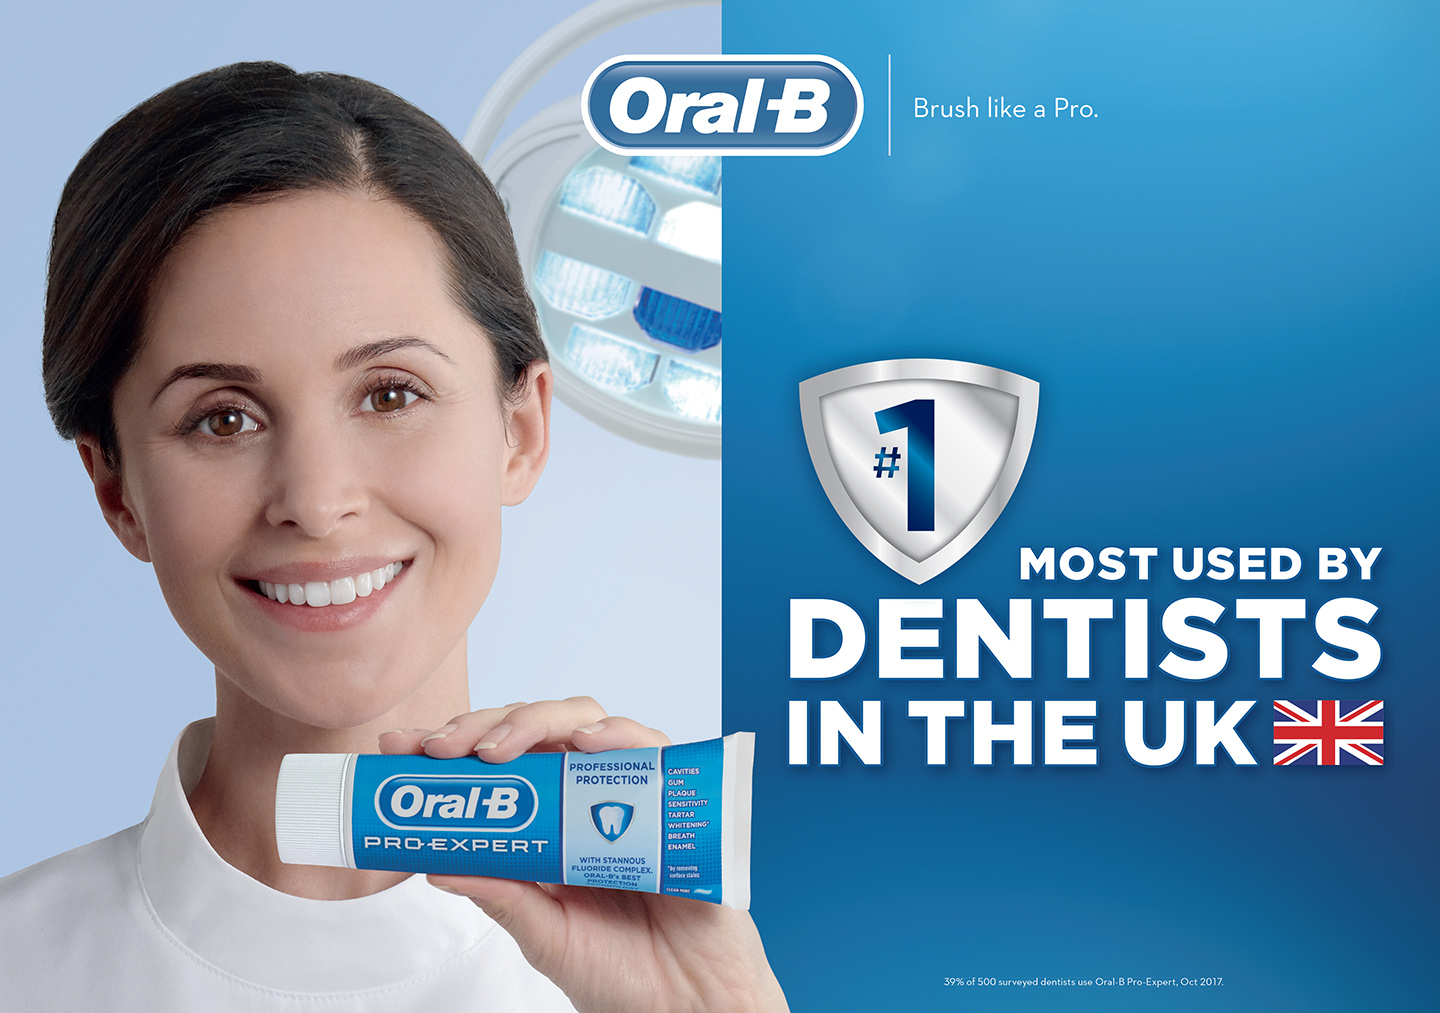 15078_Oral-B_Paste_Awareness_LS_KV_1.1.indd